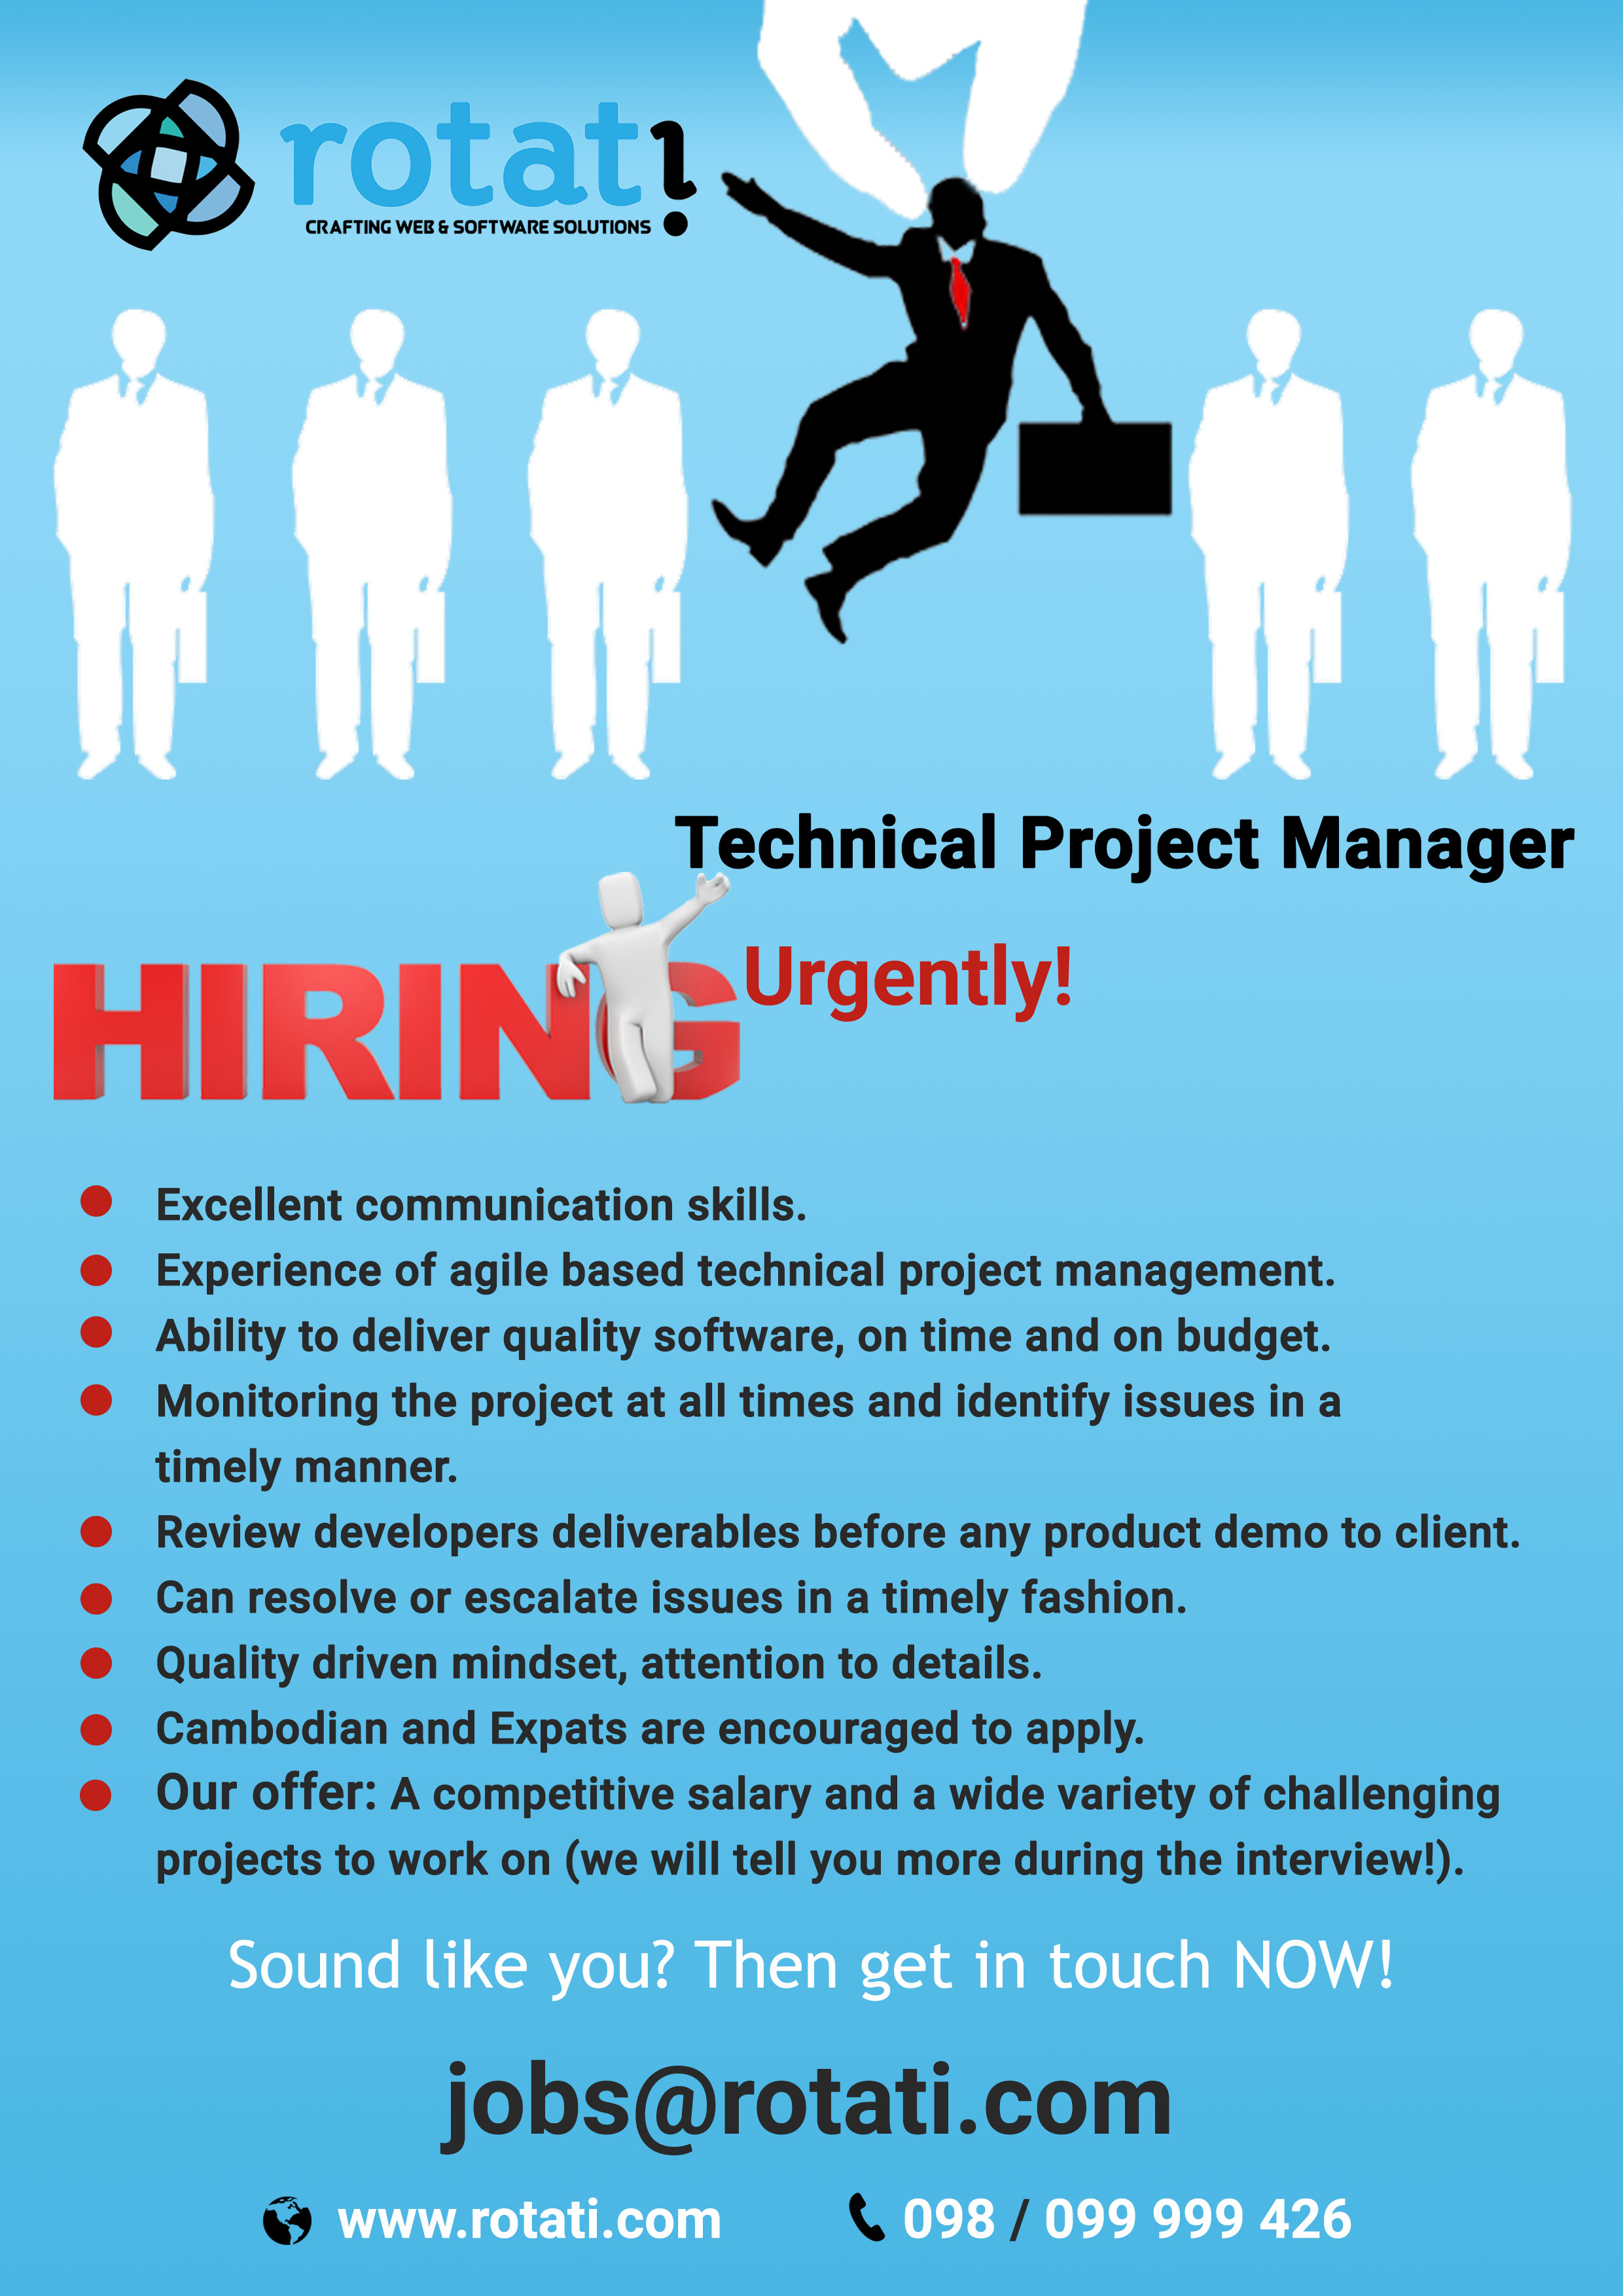 technical project manager salary See the average it project manager salary in the united states and learn how much a it project manager can make in different us cities it project managers are responsible for working with technical teams to deliver projects on time, within scope and on budget.